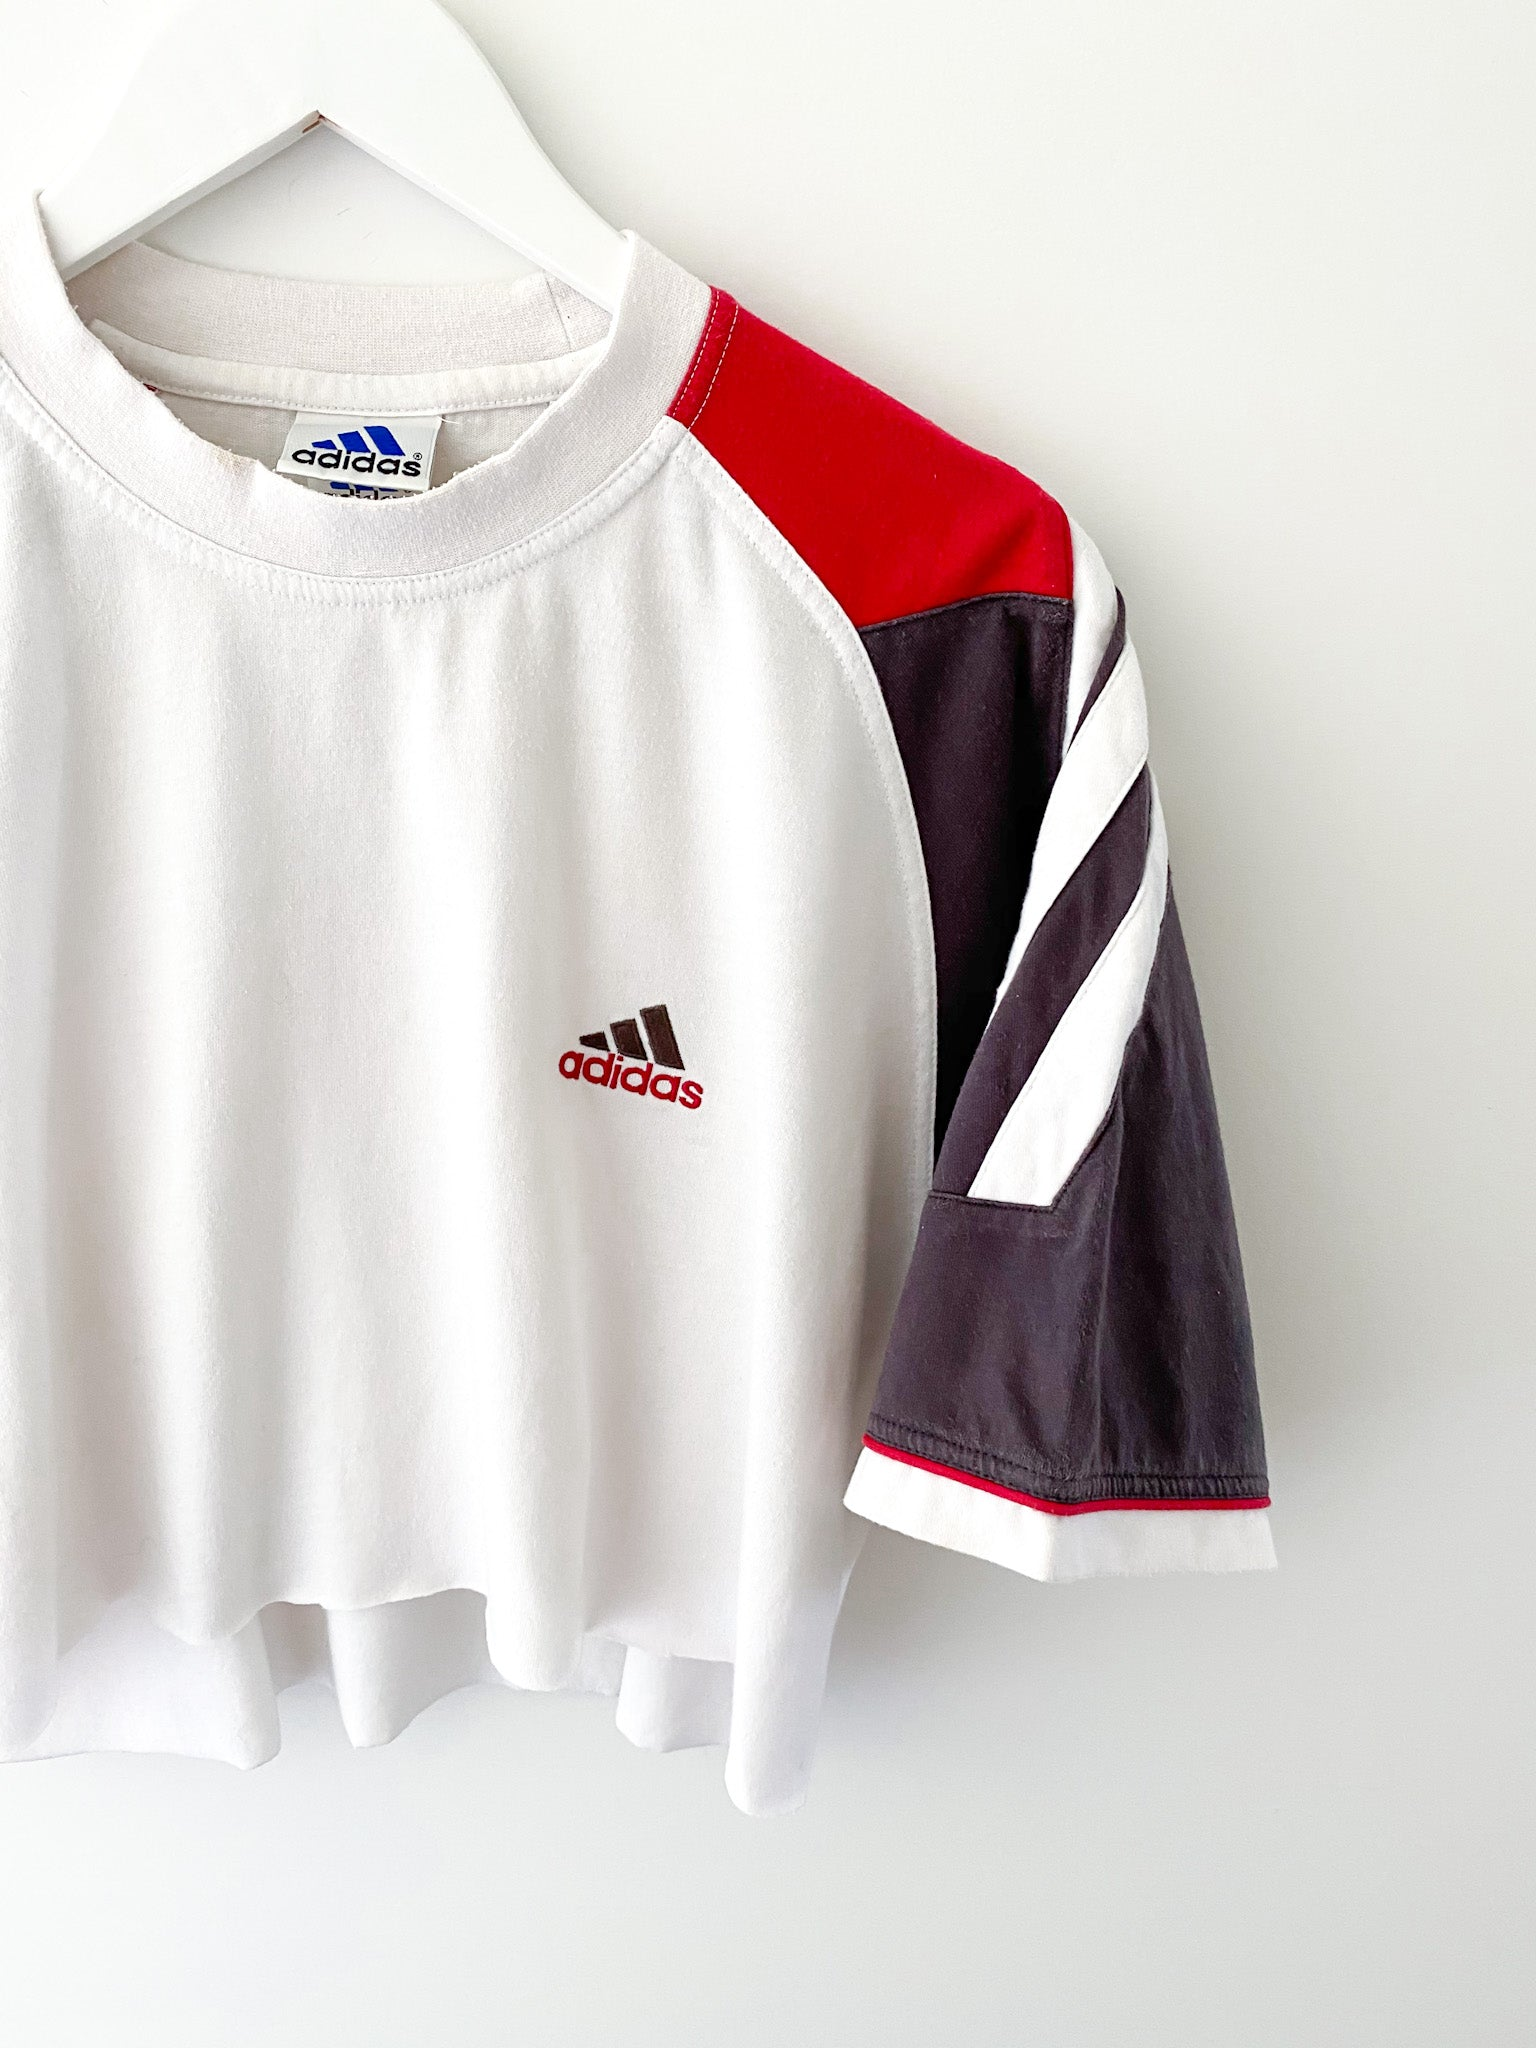 WHITE ADIDAS CROPPED TEE (L)